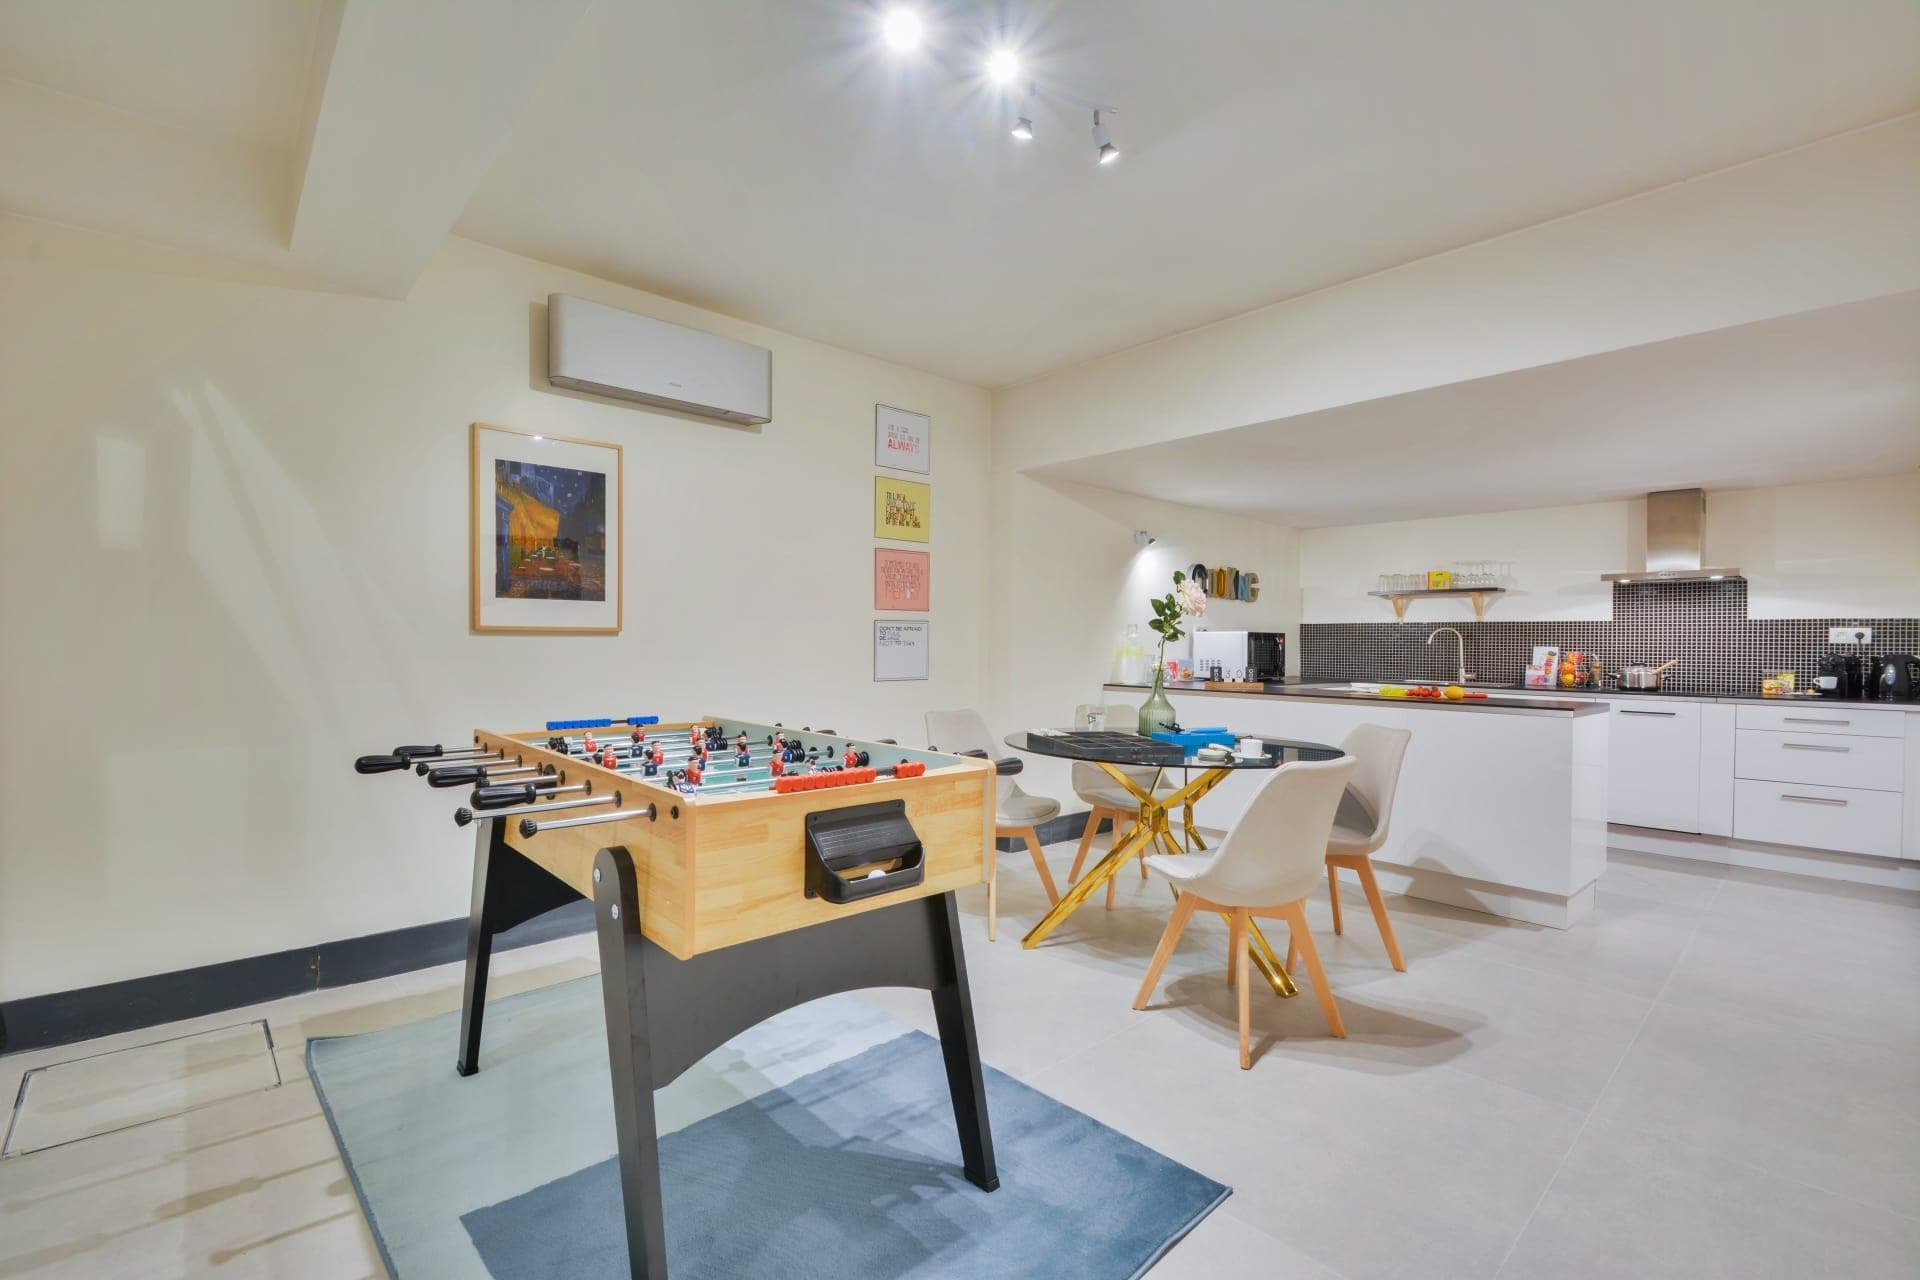 Property Image 1 - One Bedroom Duplex Vacation Apartment in Montmartre,  18th arrondissement